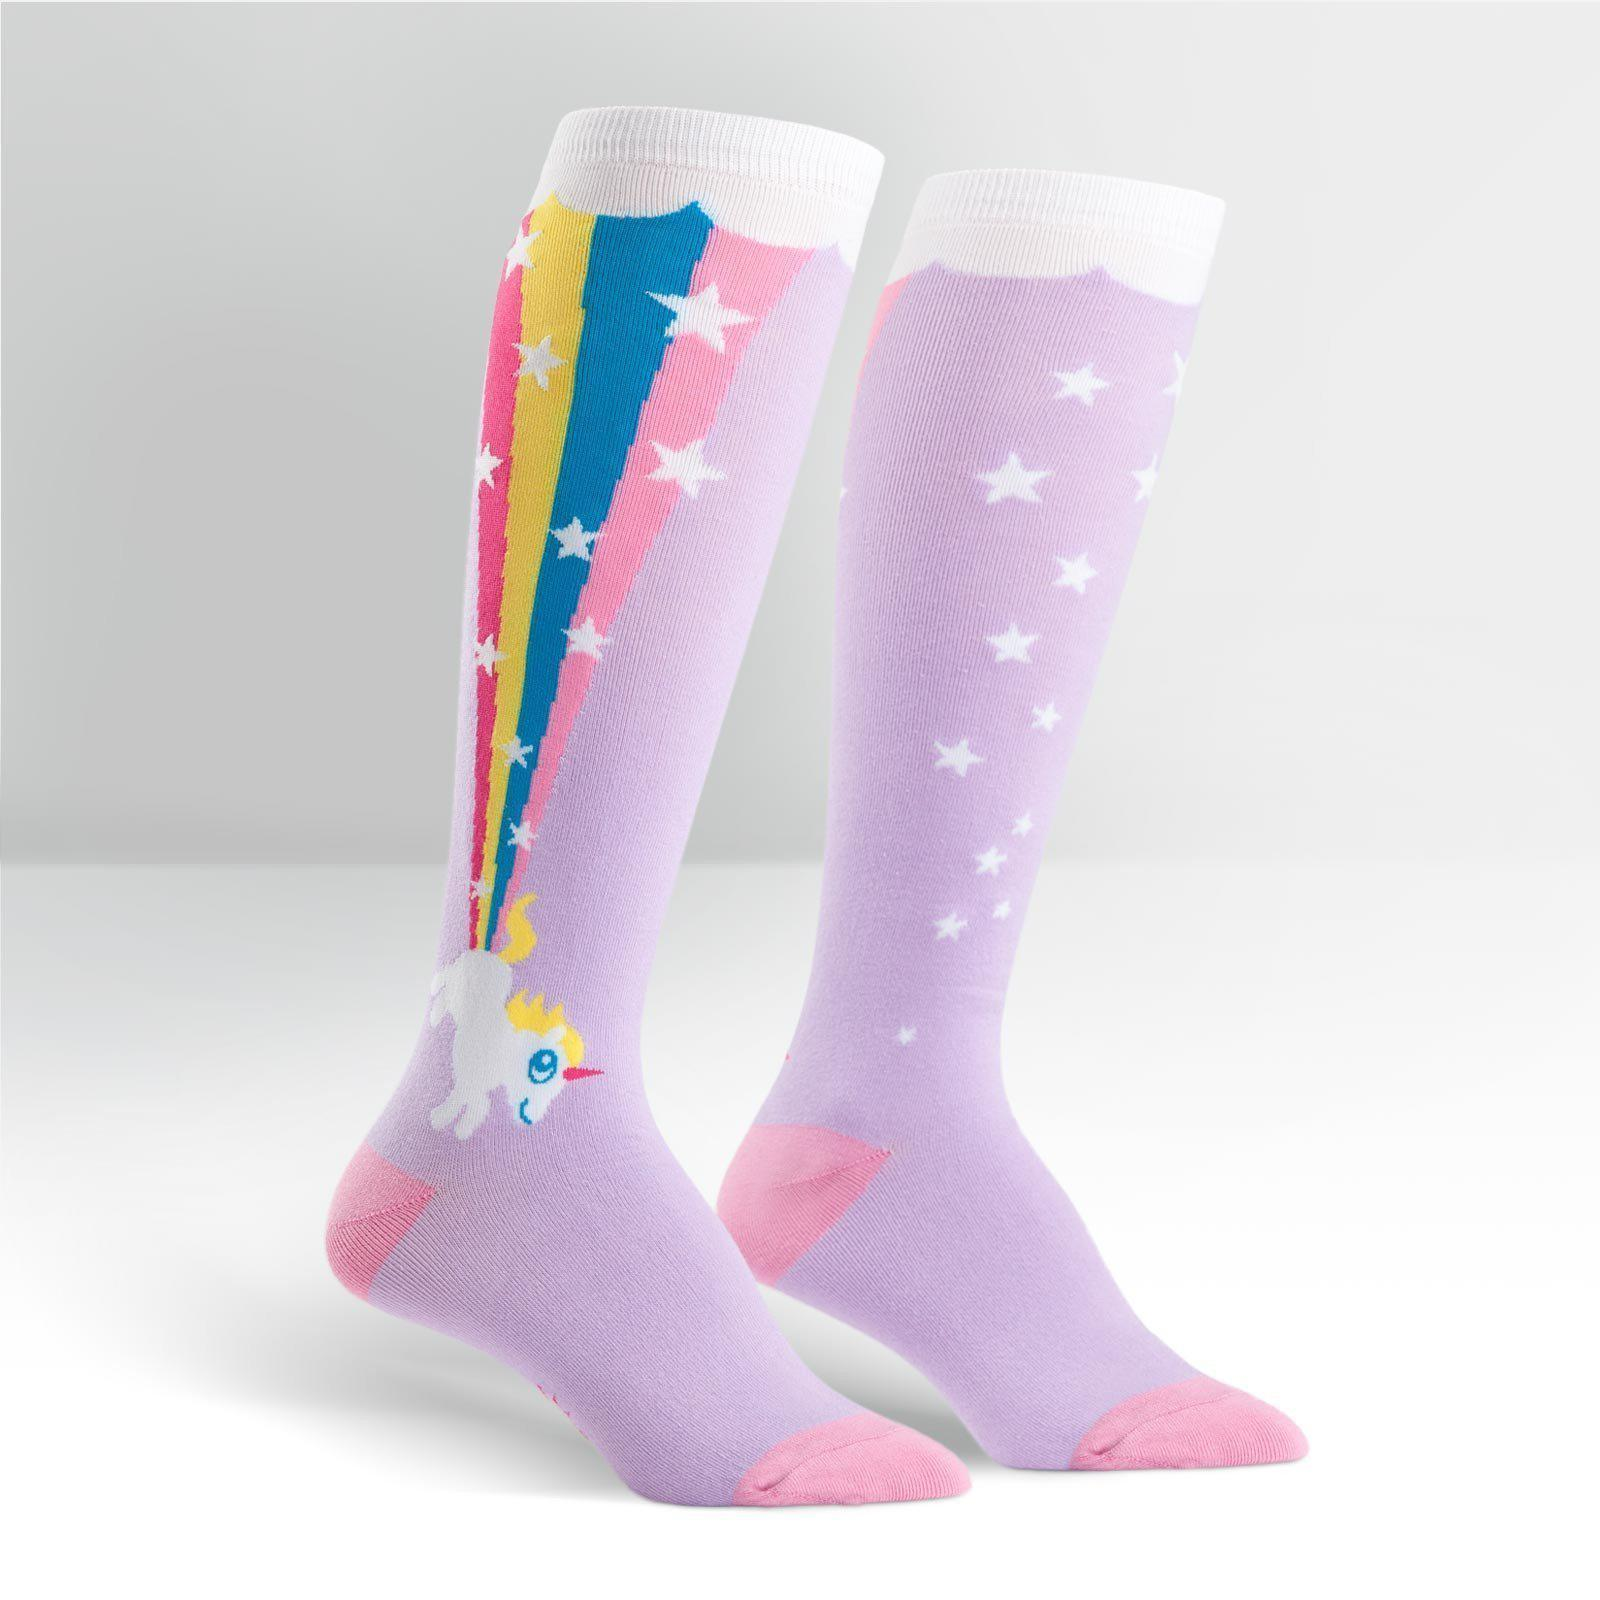 Sock It To Me - Rainbow Blast Knee High Socks | Women's - Knock Your Socks Off